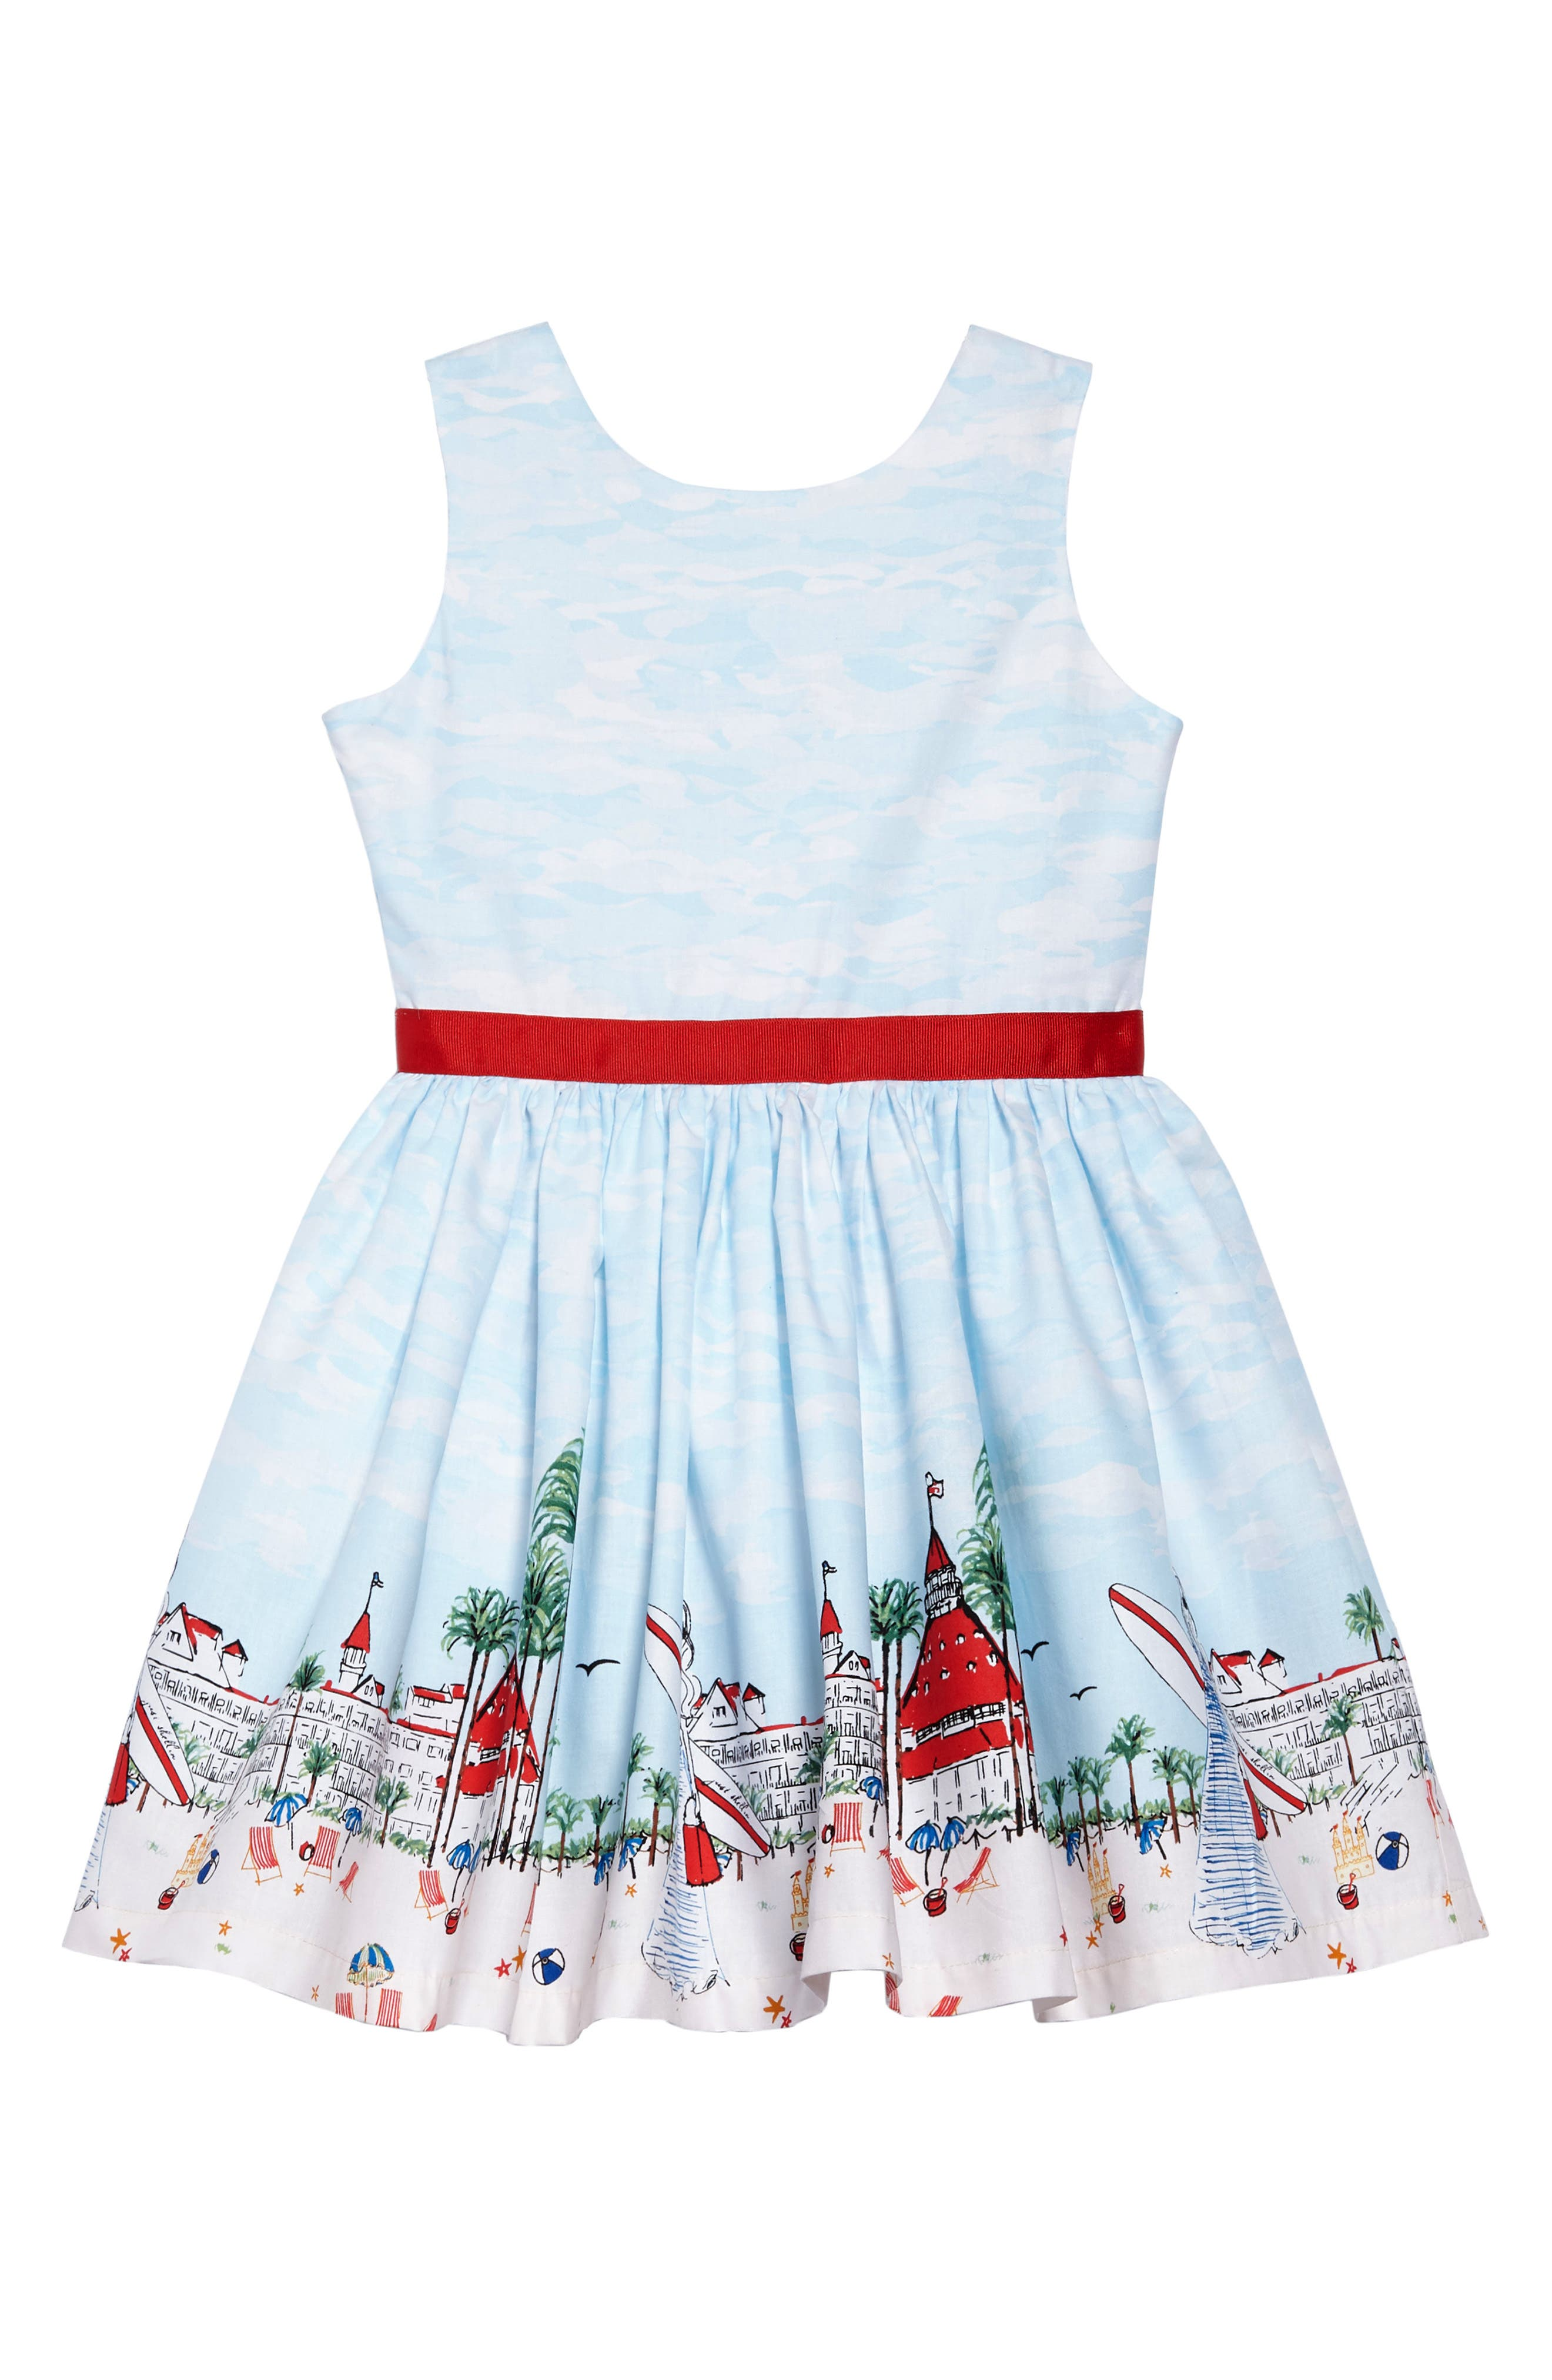 Just Shellin Party Dress,                         Main,                         color, 100